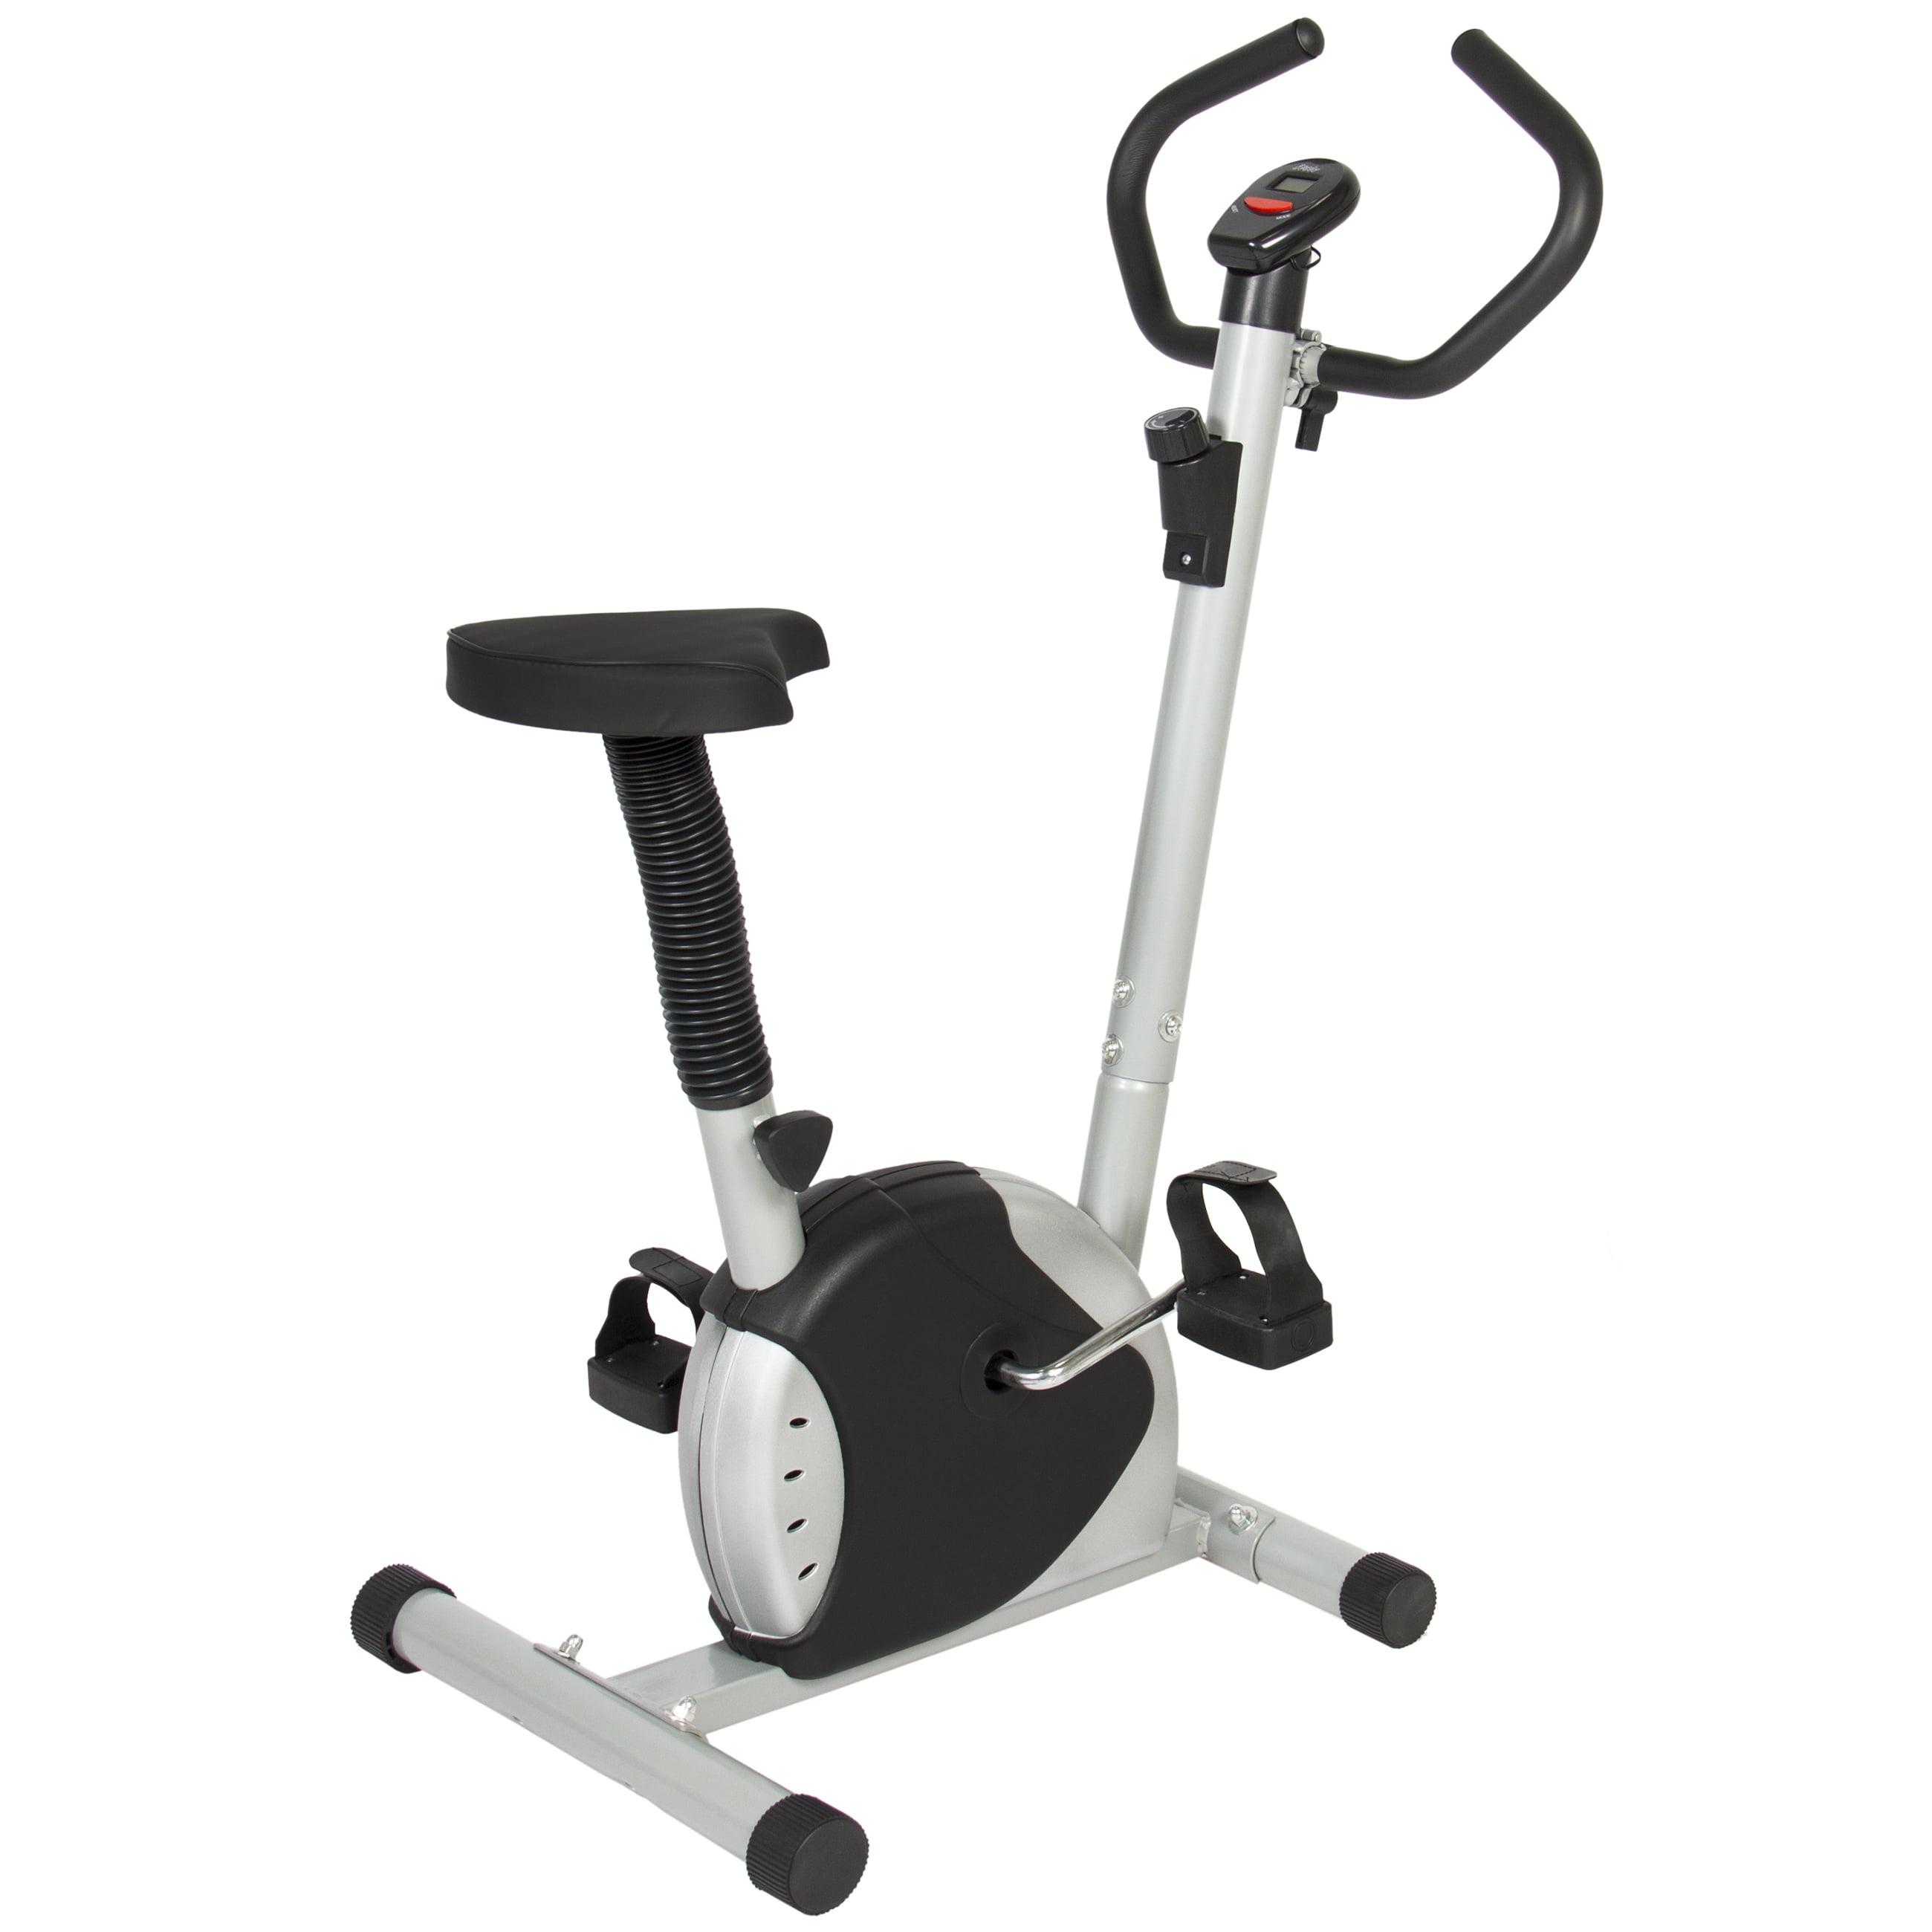 Best Choice Products Exercise Bike Fitness Cycling Machine Cardio Aerobic Equipment Workout Gym by